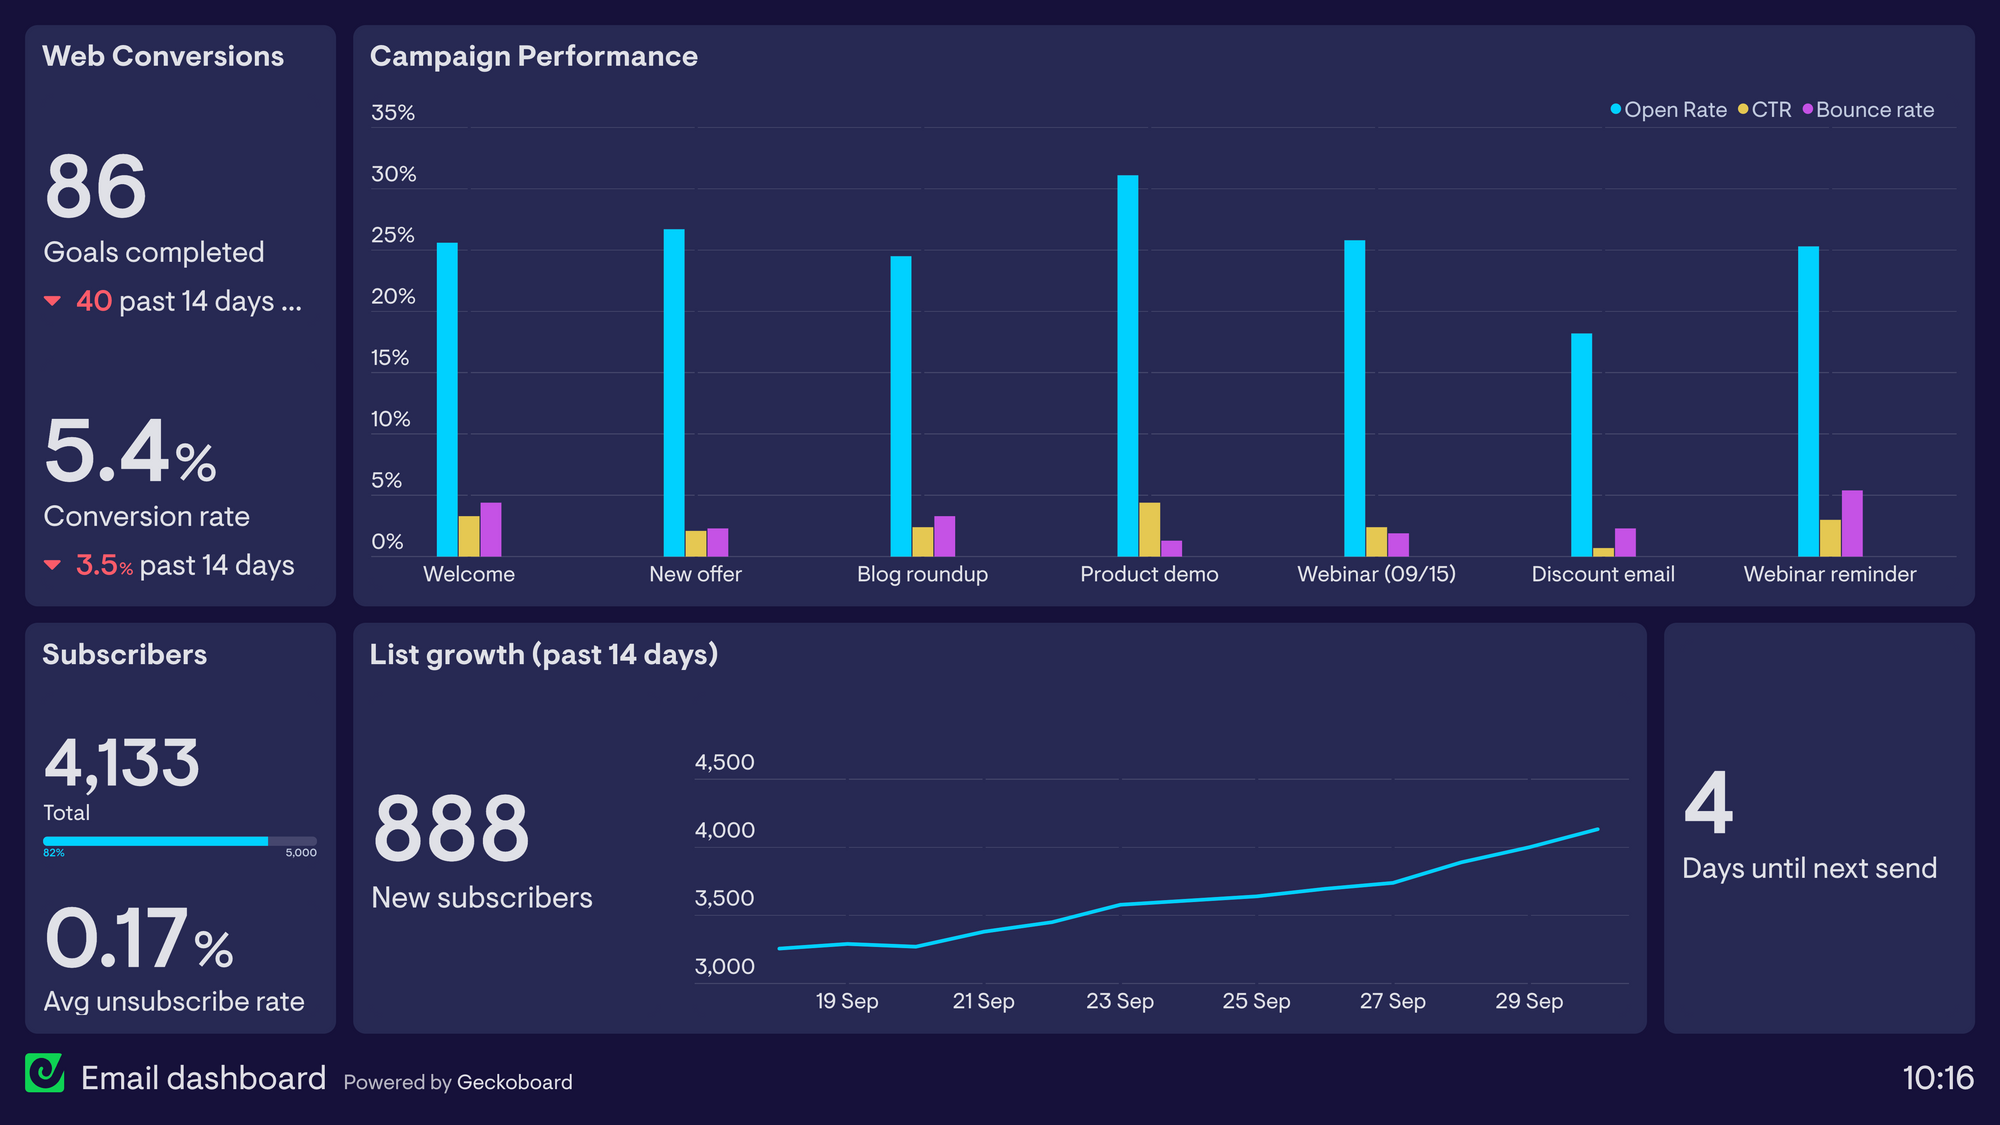 An email marketing dashboard example made using Geckoboard